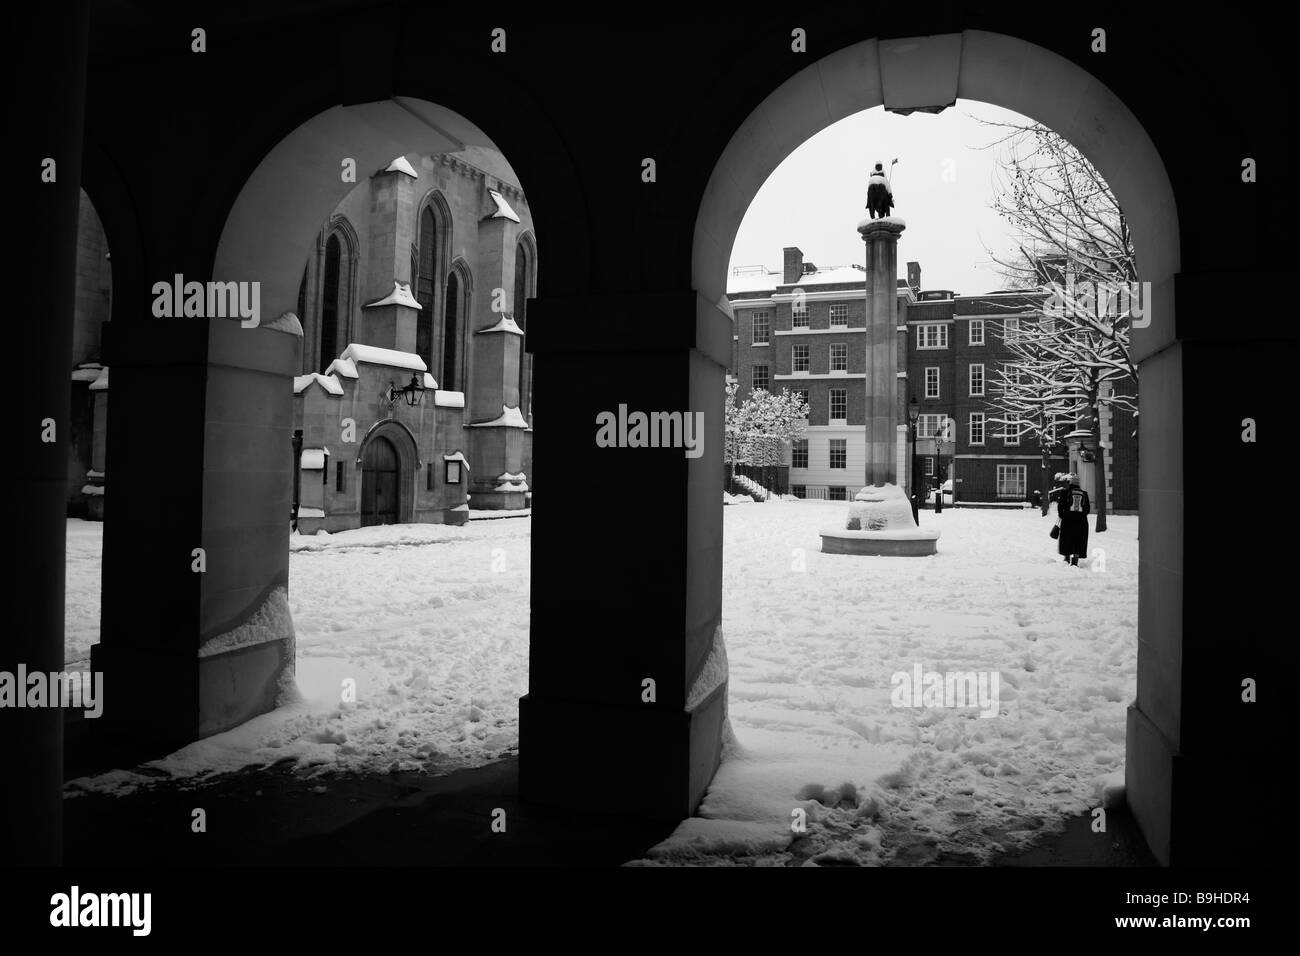 Snow at Temple Church, Inner Temple, Inns of Court, London - Stock Image